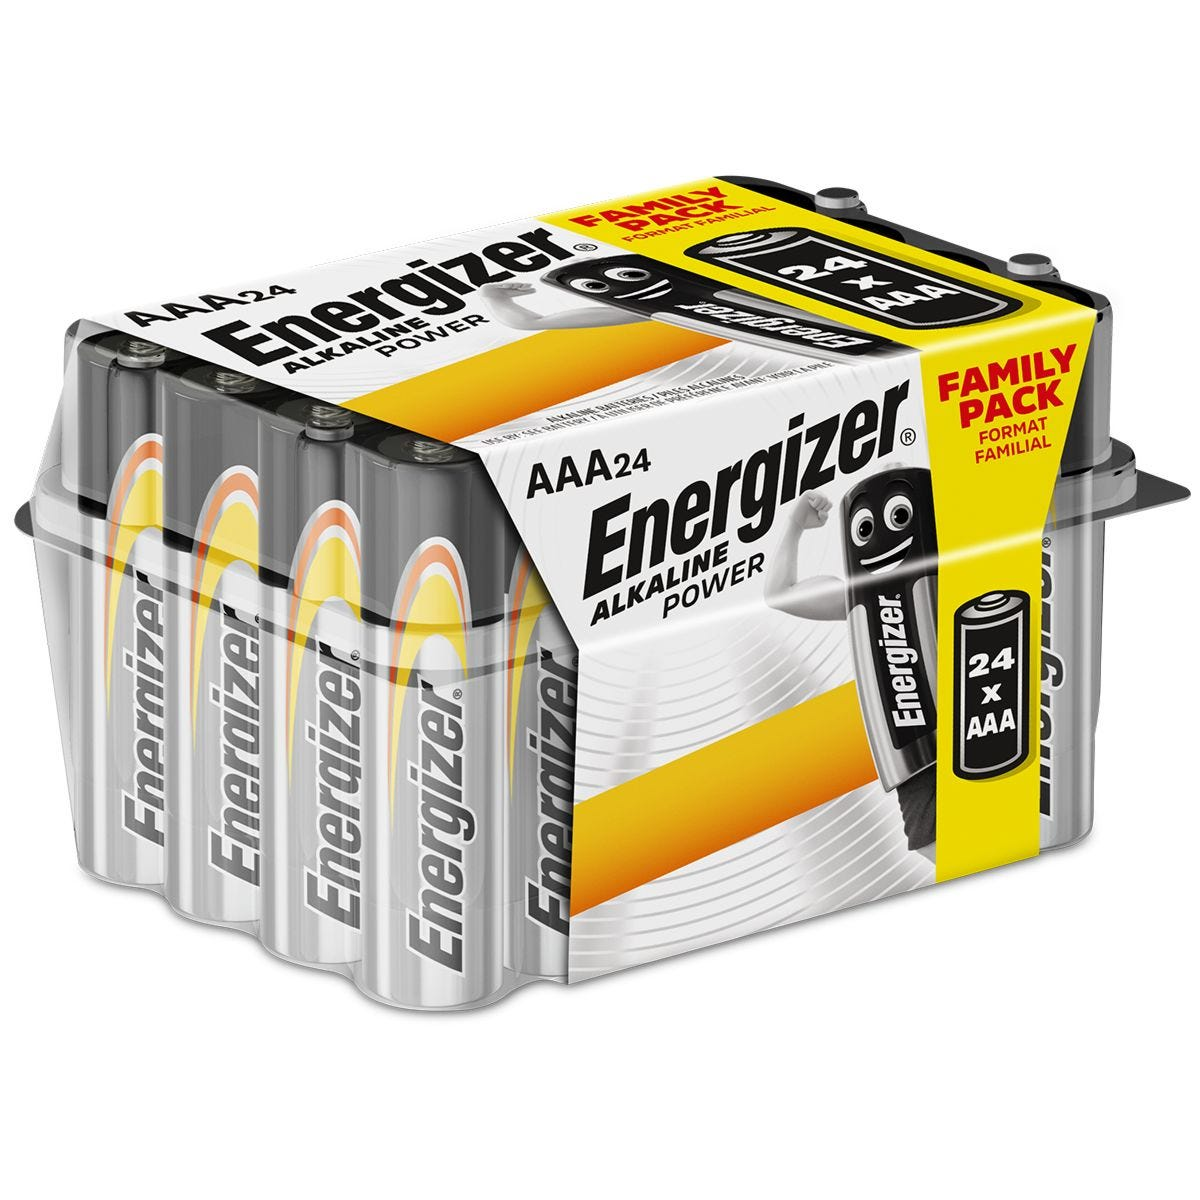 Energizer AAA Alkaline Power Batteries - 24 Pack